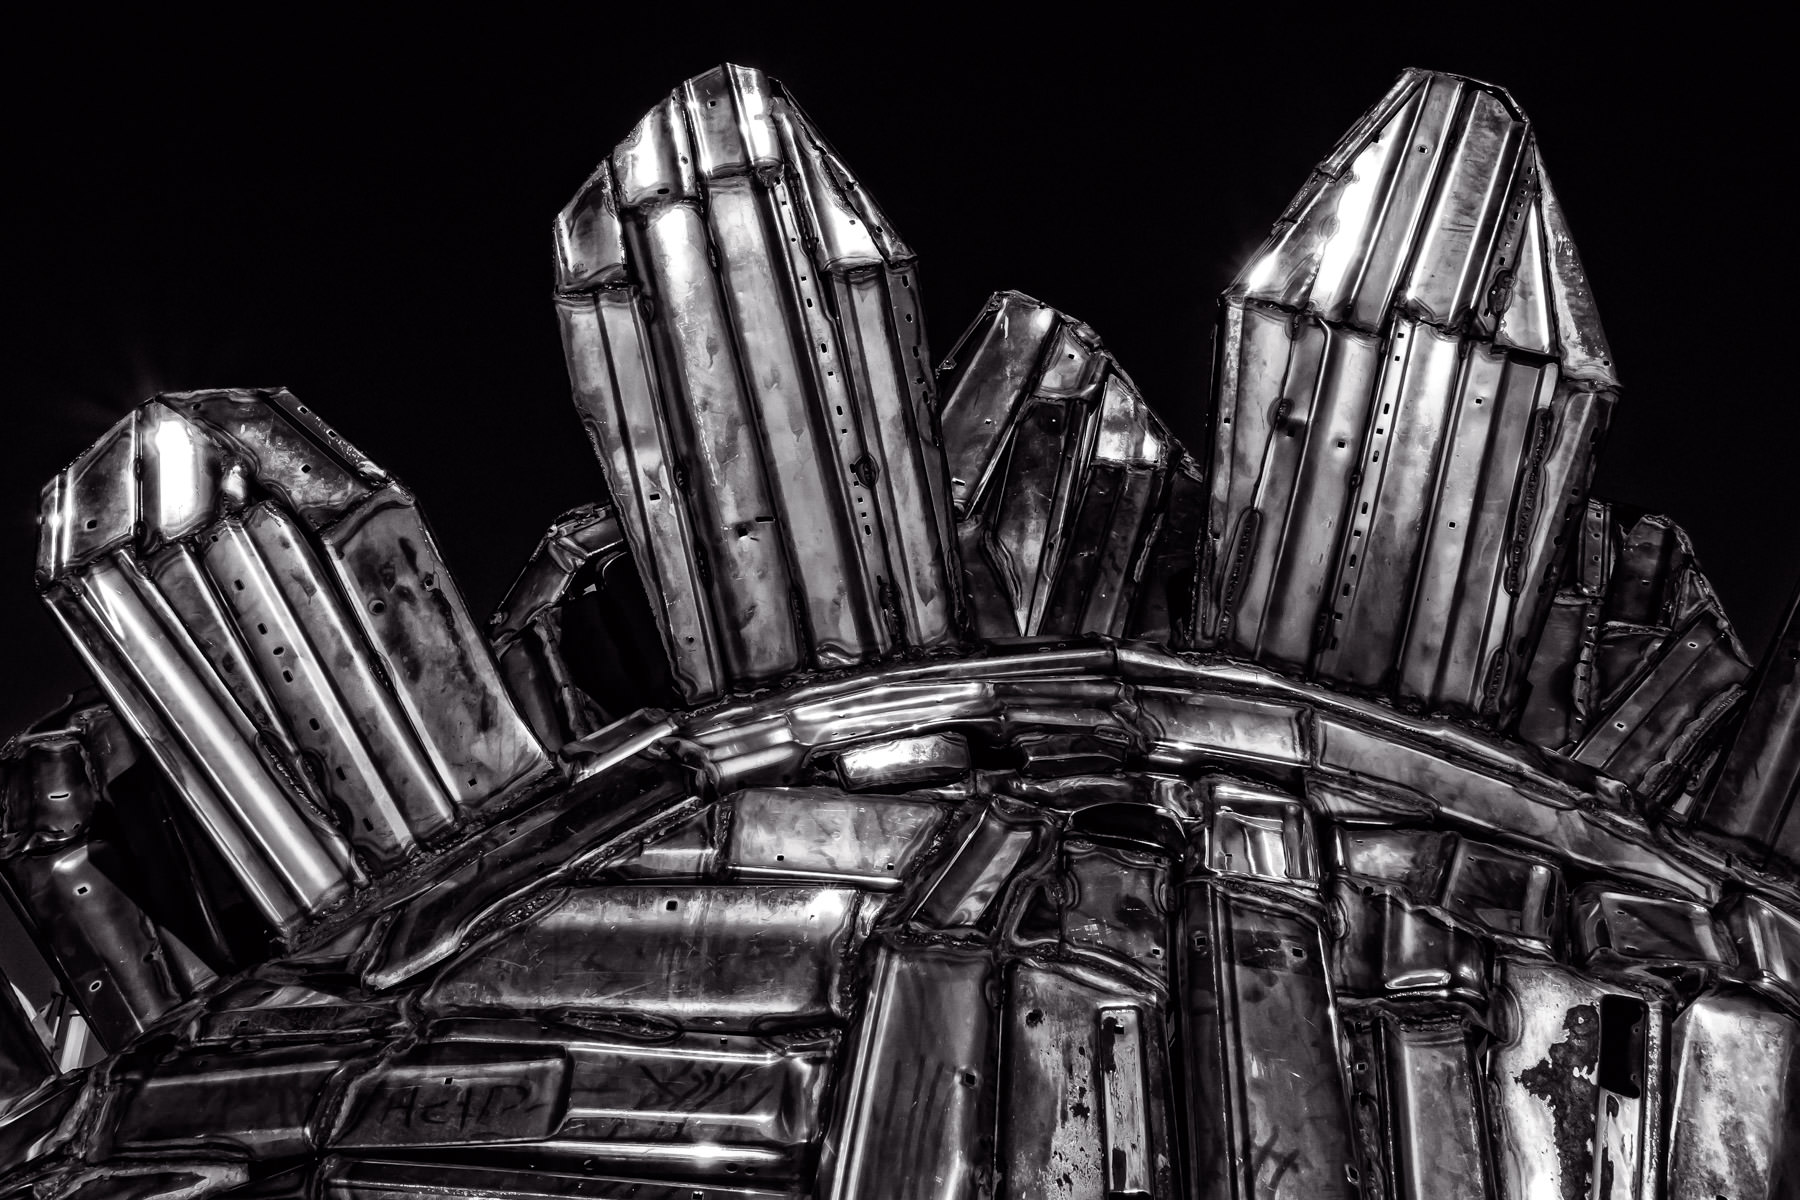 Detail of a sculpture of a chrome stegosaurus by artist John Kearney on display at Louis Tussaud's Palace of Wax in Grand Prairie, Texas.